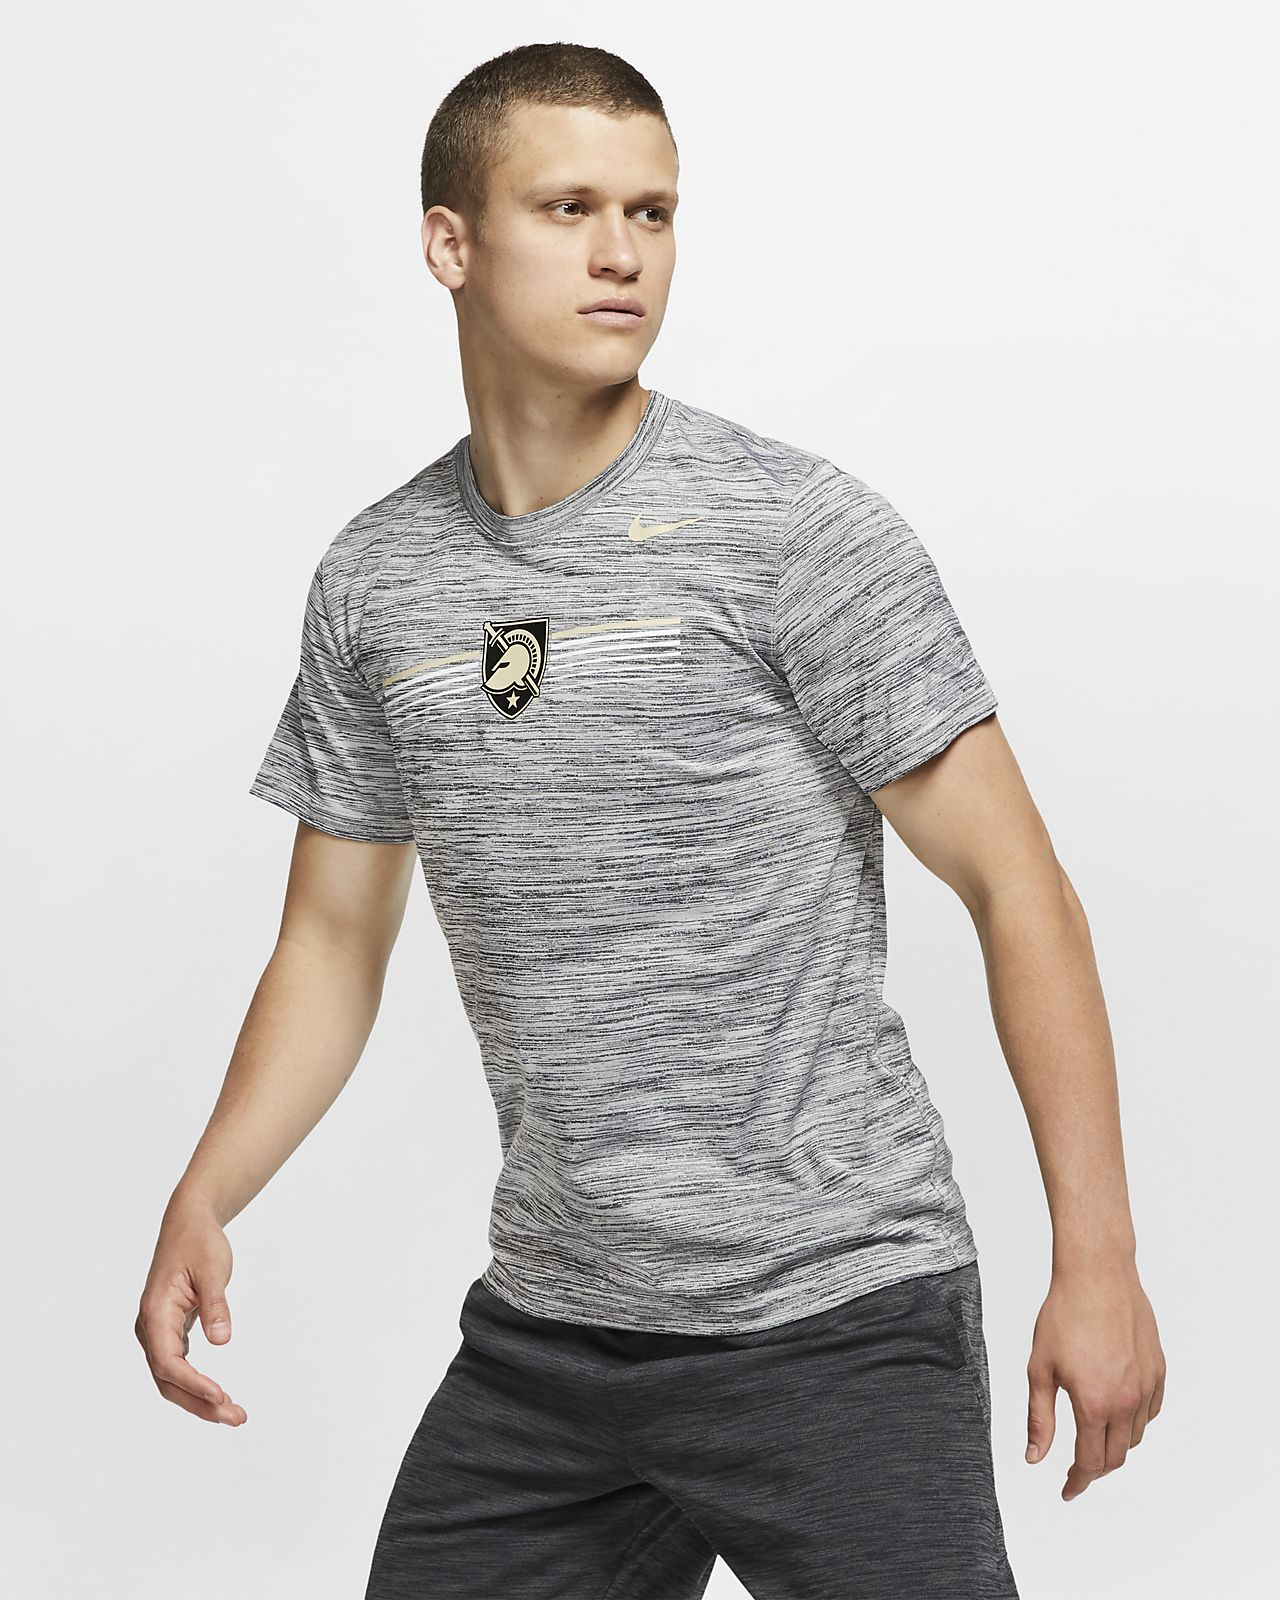 Nike College Dri-FIT Legend Velocity (Army) Men's T-Shirt